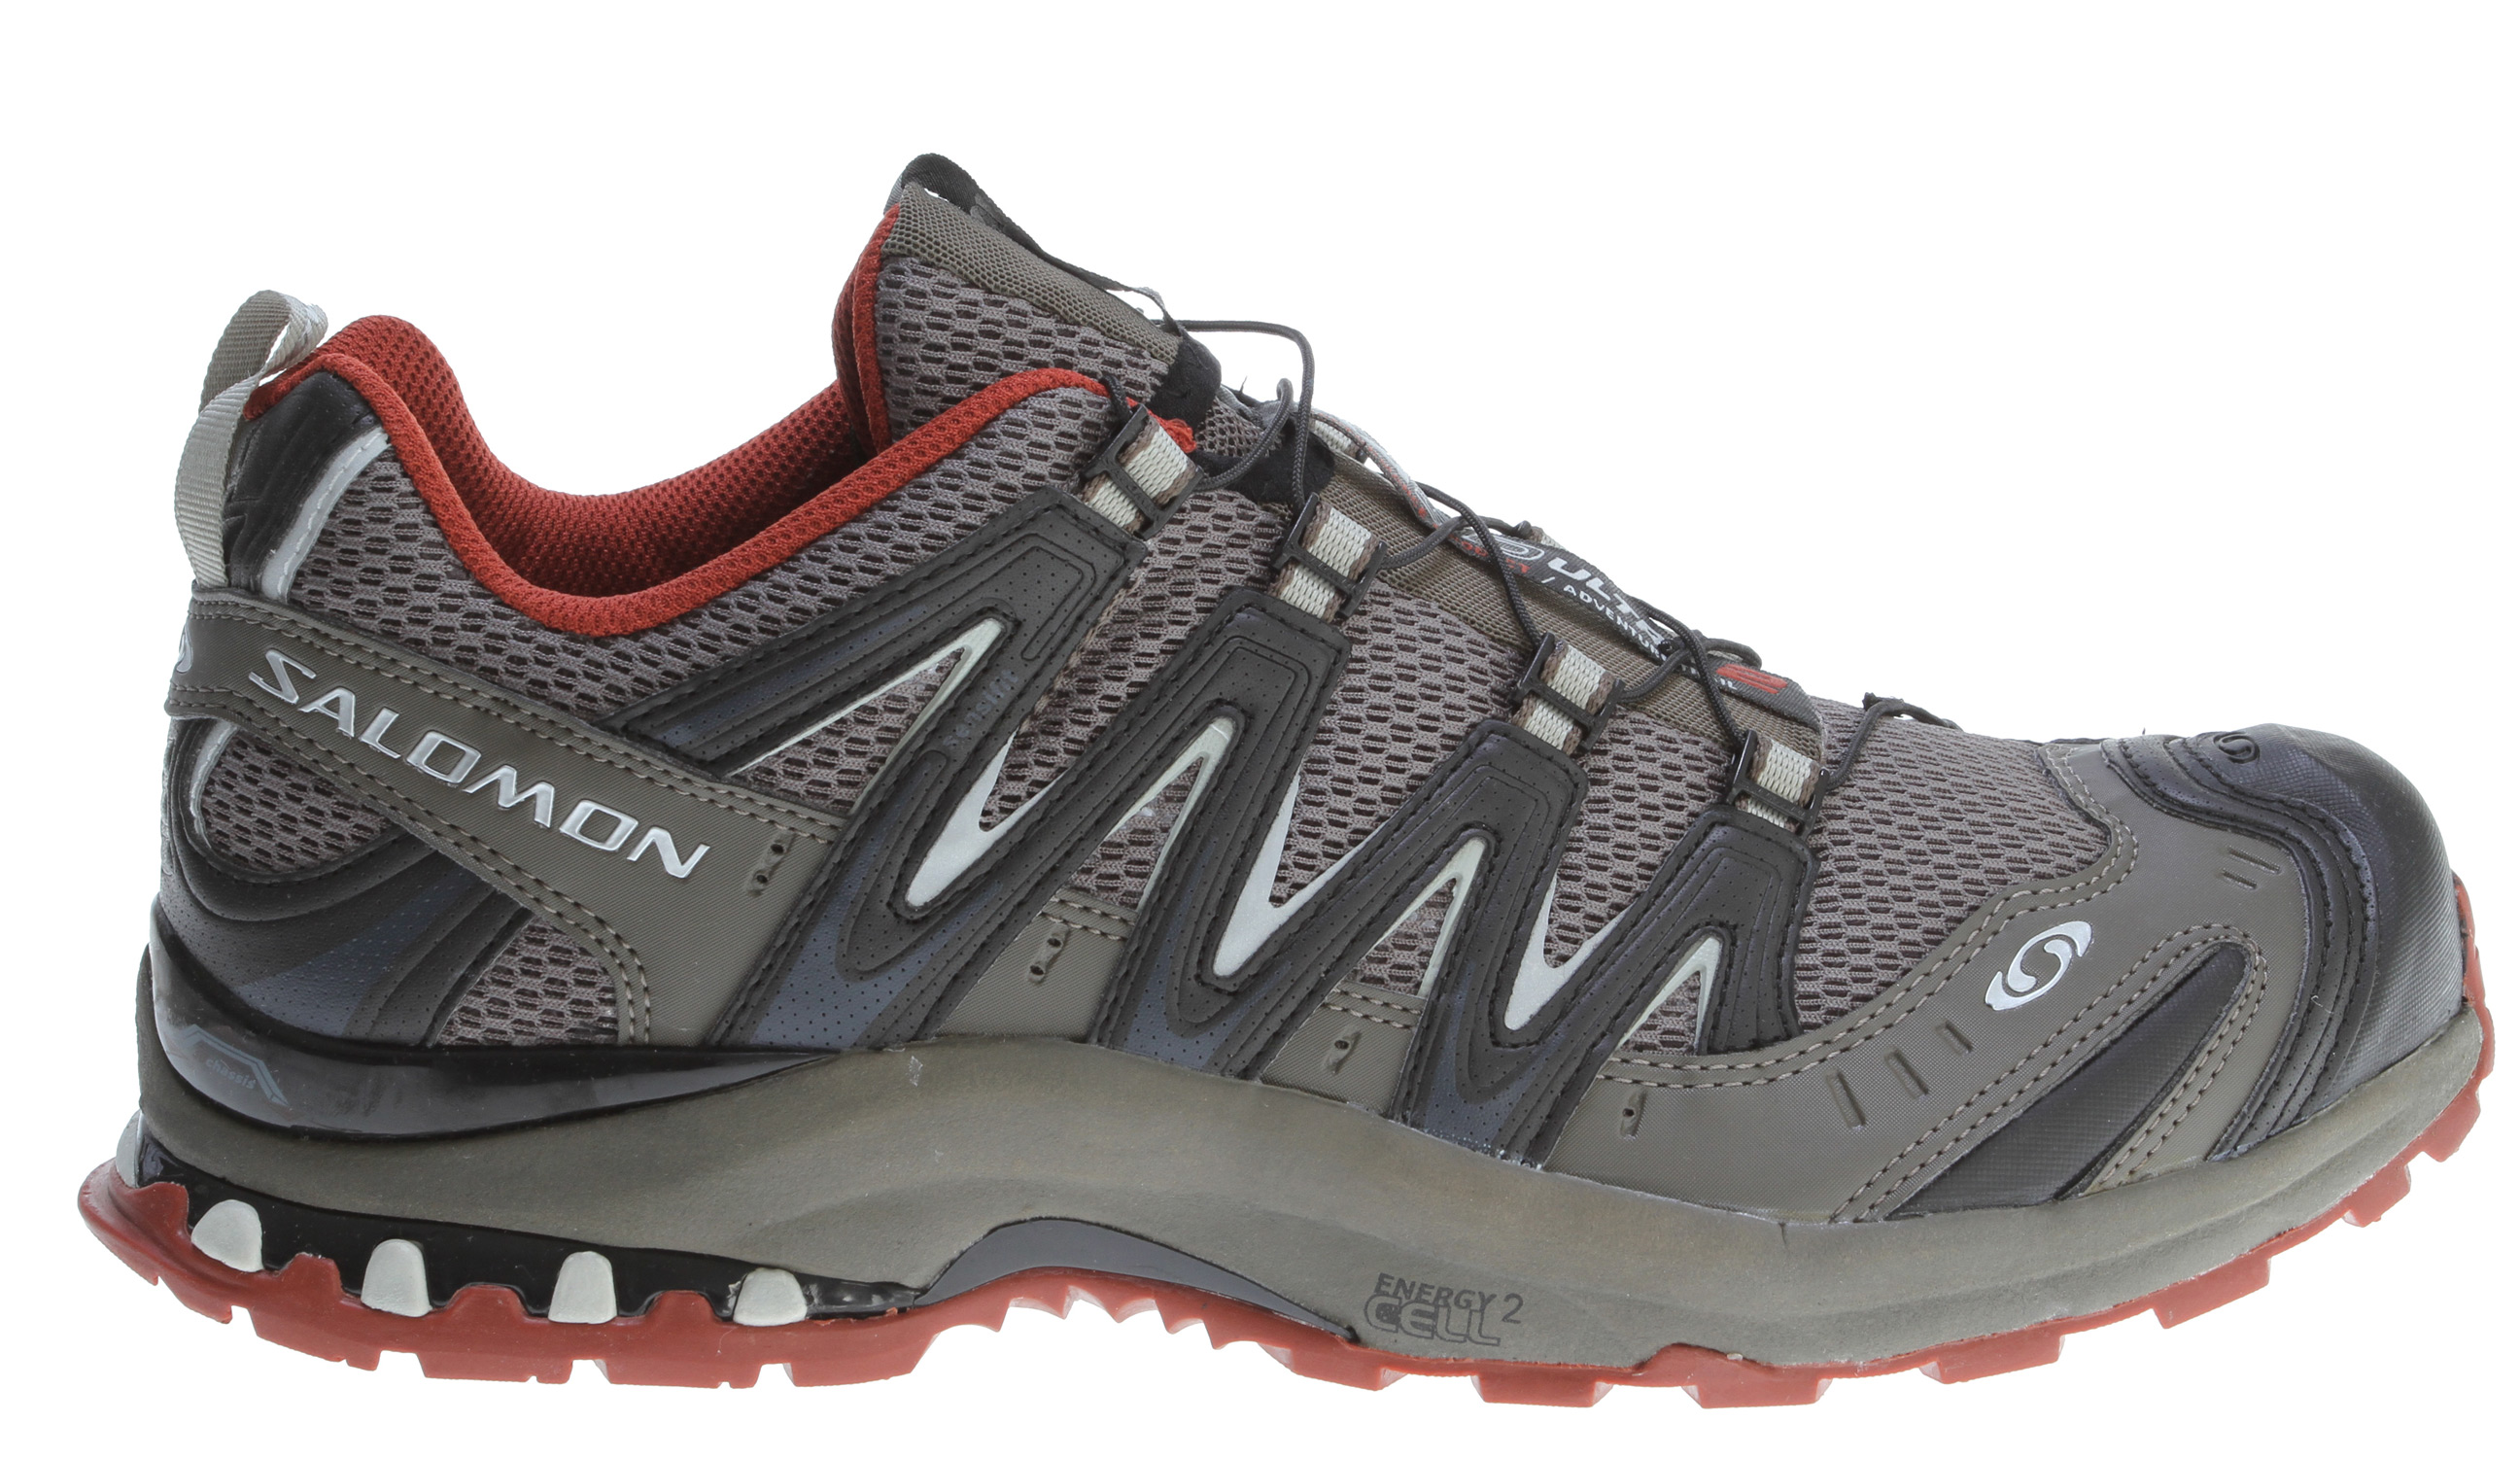 Camp and Hike Mountain trail running shoe with added ankle support of a mid cut and GORE-TEX for year round climate comfort.Key Features of the Salomon XA Pro 3D Ultra 2 Hiking Shoe: Weight: 415g / 14.6oz (SIZE 9 US) Upper: Protective rubber toe cap Gusseted tongue Lace pocket Sensifit™ Protective heel cap Friction free lace eyelet EVA molded foam Mud guard Protective synthetic toe cap Quicklace™ Anti-debris mesh Water Resistant textile Lining: membrane: GORE-TEX® Extended Comfort Footwear Midsole: Du l density EVA Molded EVA Outsole: Non marking Contagrip® Sockliner: Anatomical EVA footbed OrthoLite® Chassis: Salomon Cushioning System 3D advanced chassis ™ - $90.95